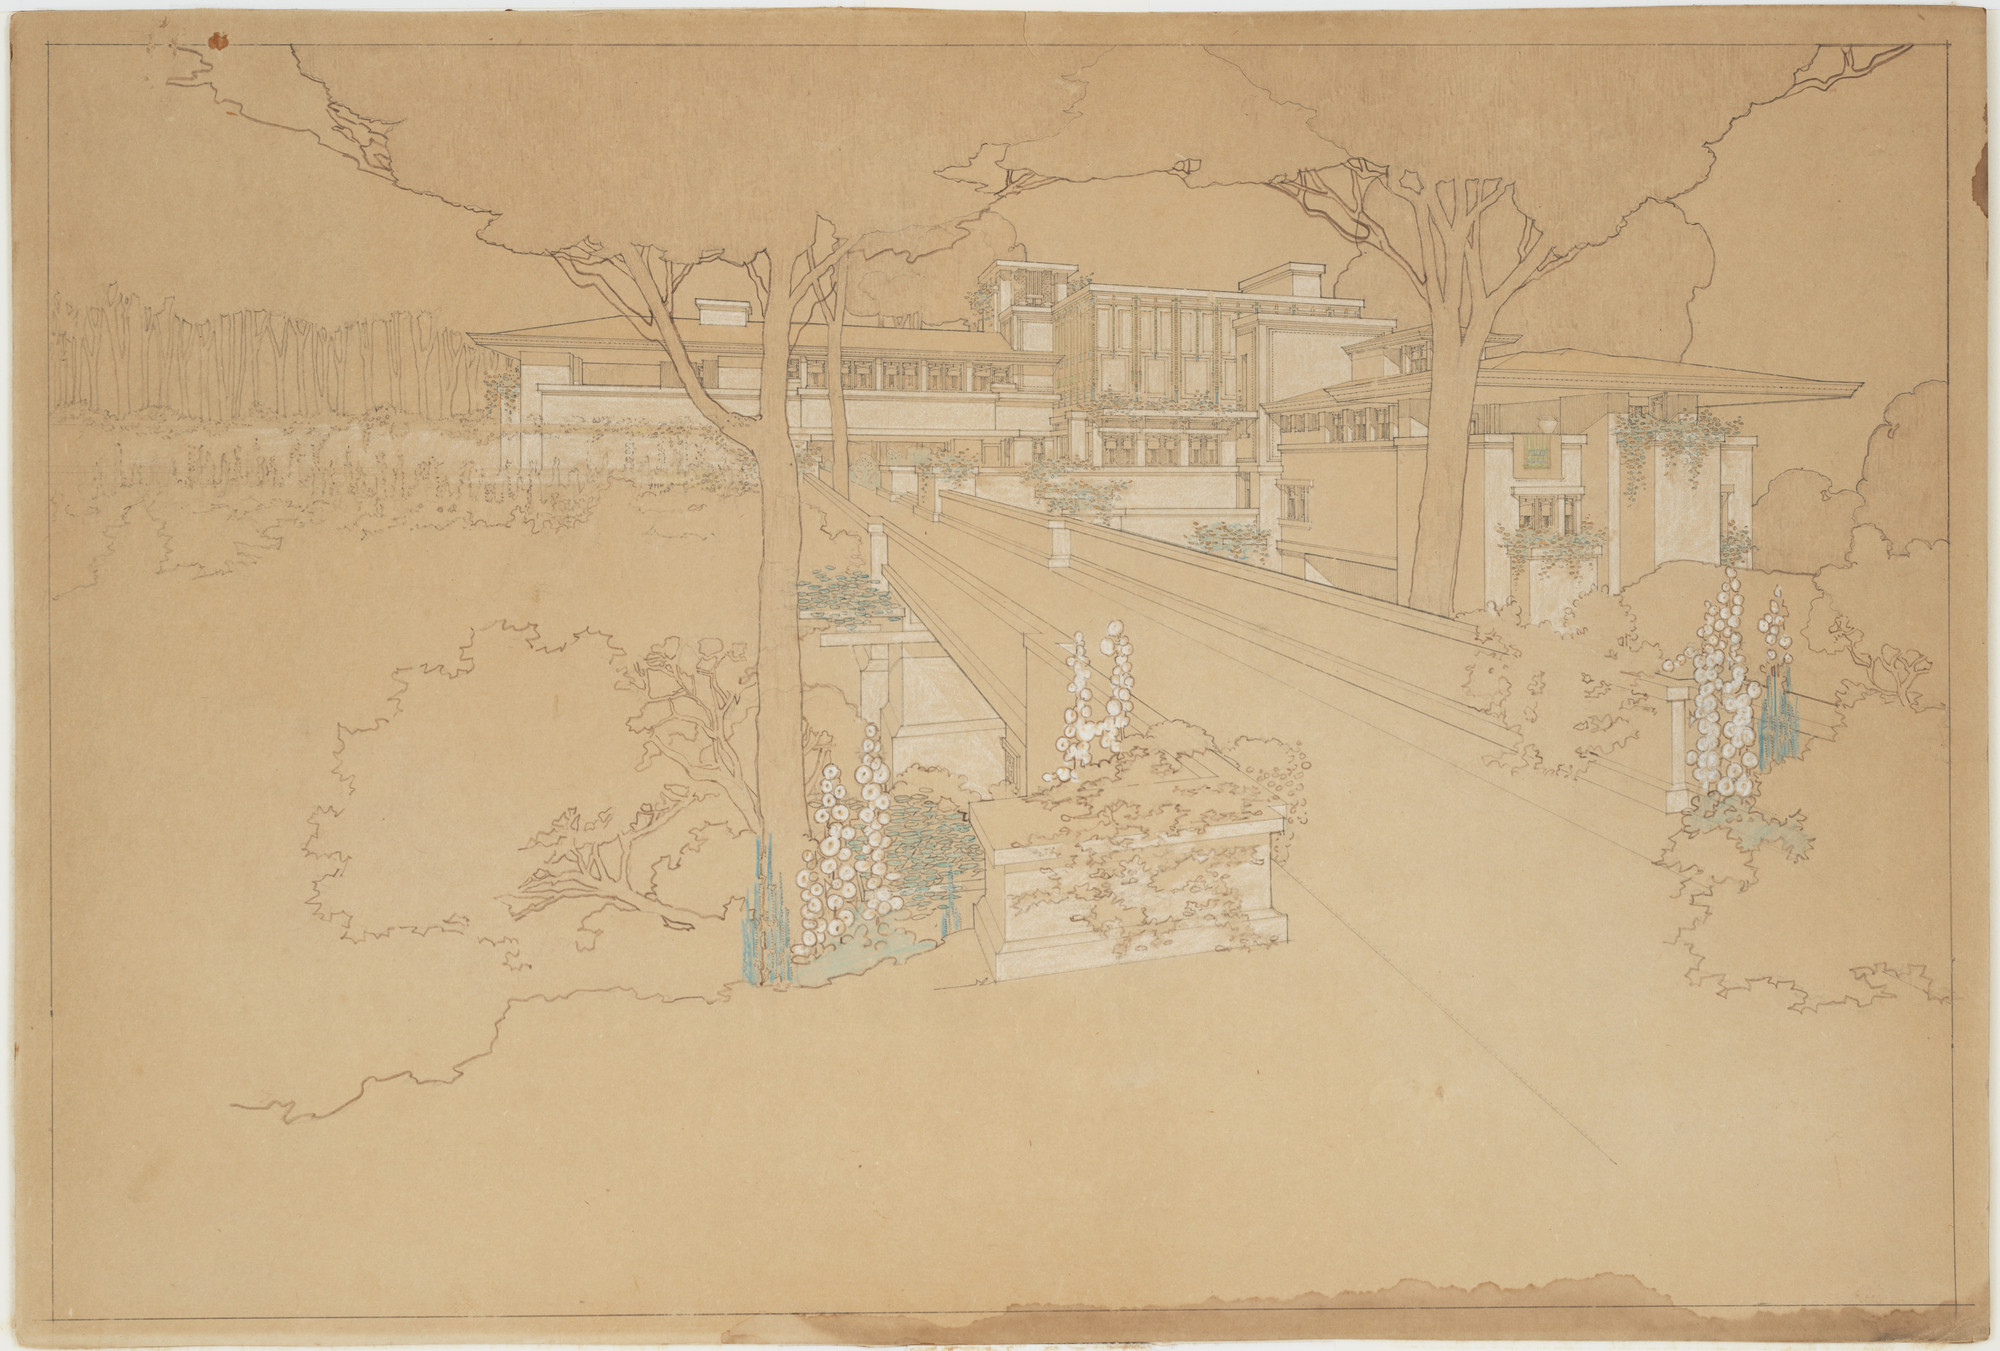 Frank Lloyd Wright. Sherman H. Booth Residence, Glencoe, Illinois, Perspective of Scheme One. 1911